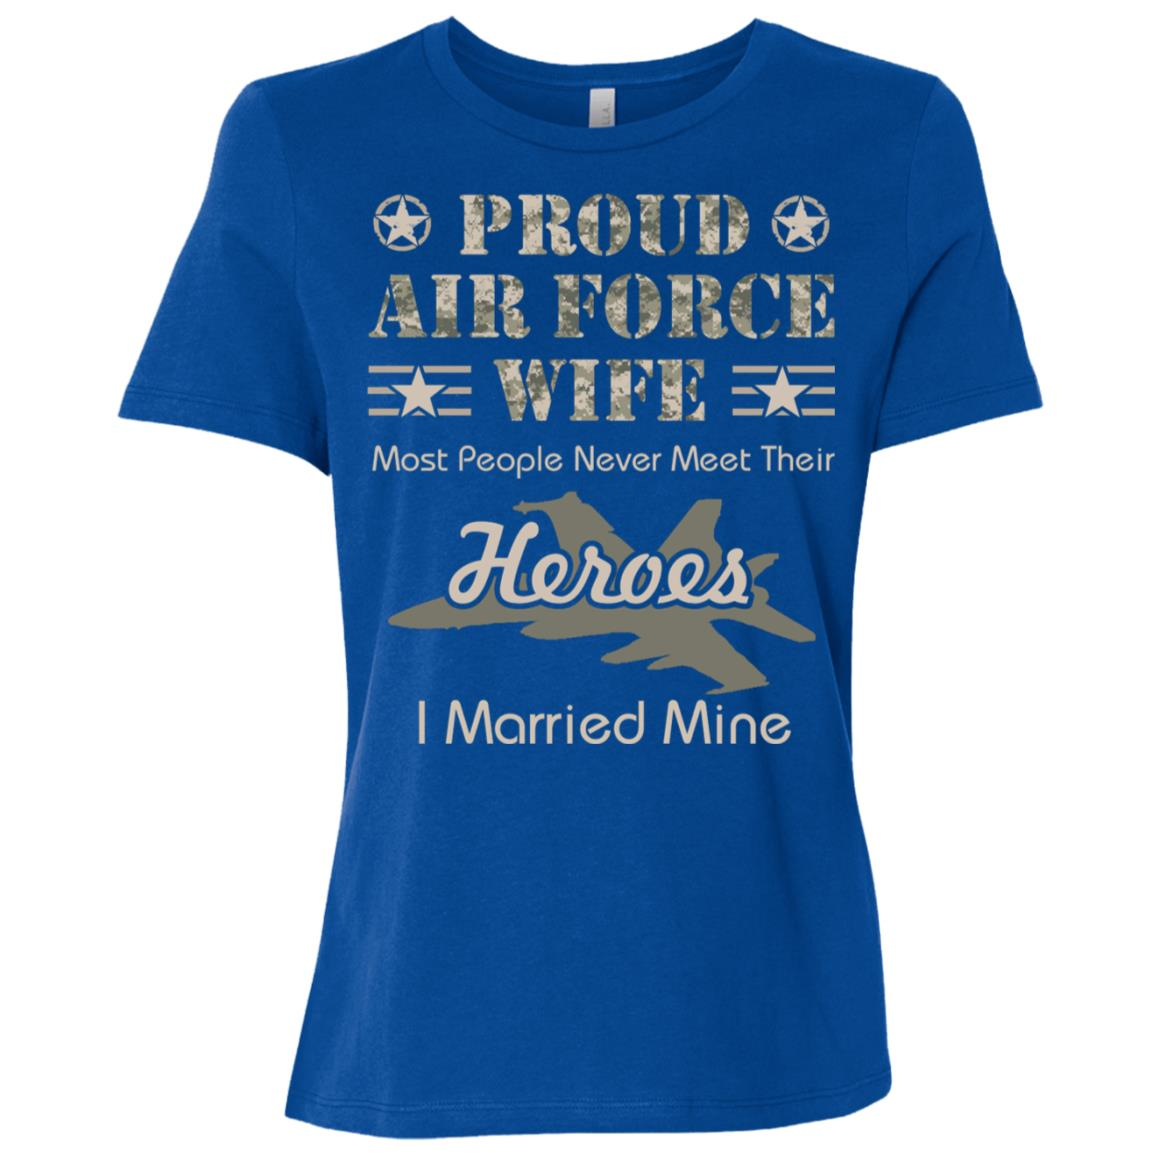 Proud Air Force Wife Women Short Sleeve T-Shirt